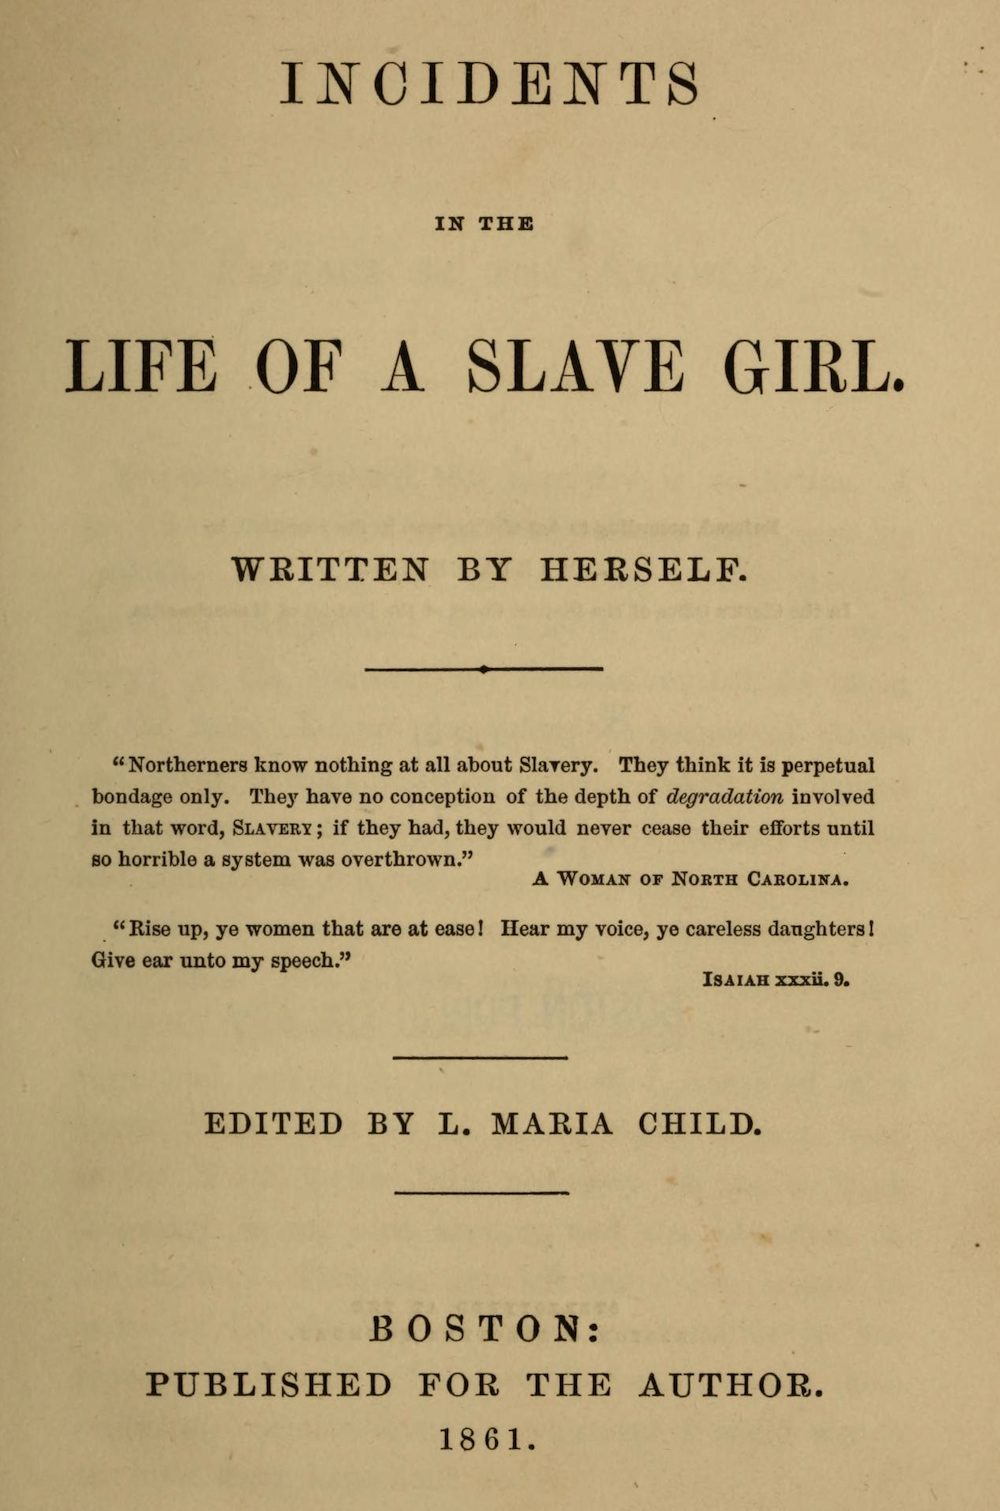 an analysis of the narrative style in harriet jacobs incidents in the life of a slave girl Incidents in the life of a slave girl (harriet jacobs) northerners know nothing at all about slavery they think it is perpetual bondage only that every man who reads this narrative will swear solemnly before god that.